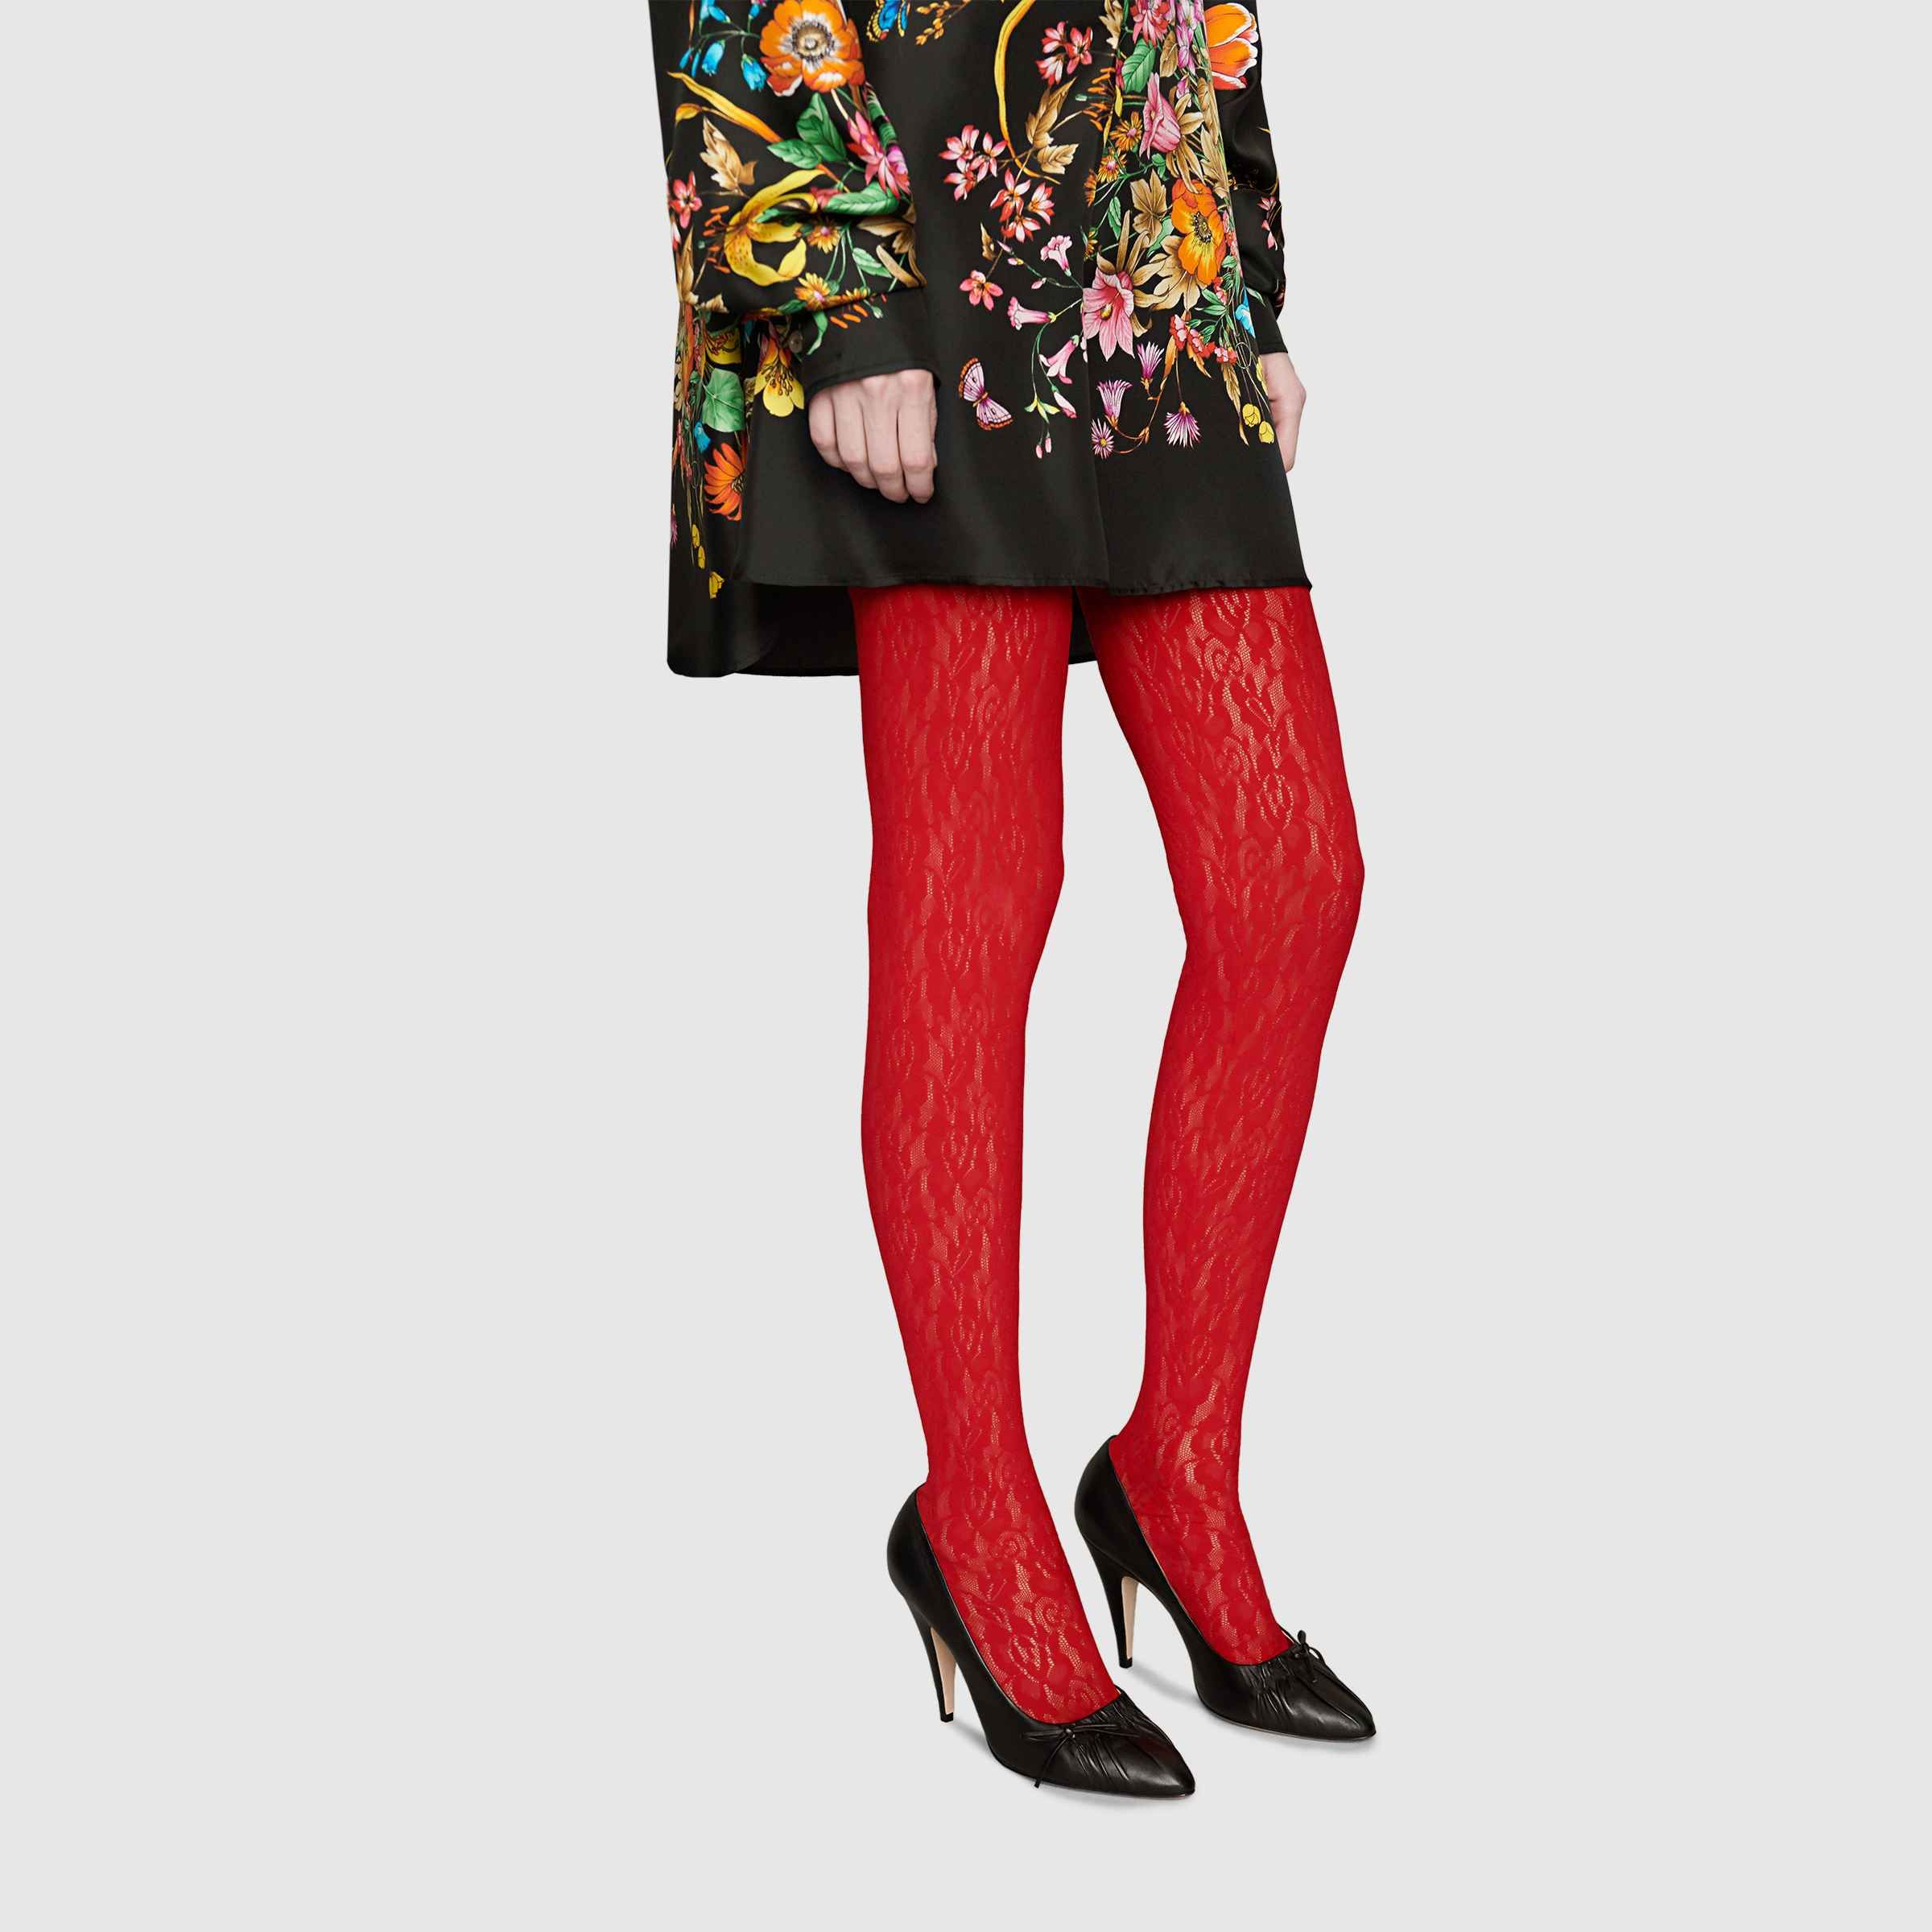 collant donna particolari, collant donna, collant fendi, collant gucci, collant calzedonia 2019